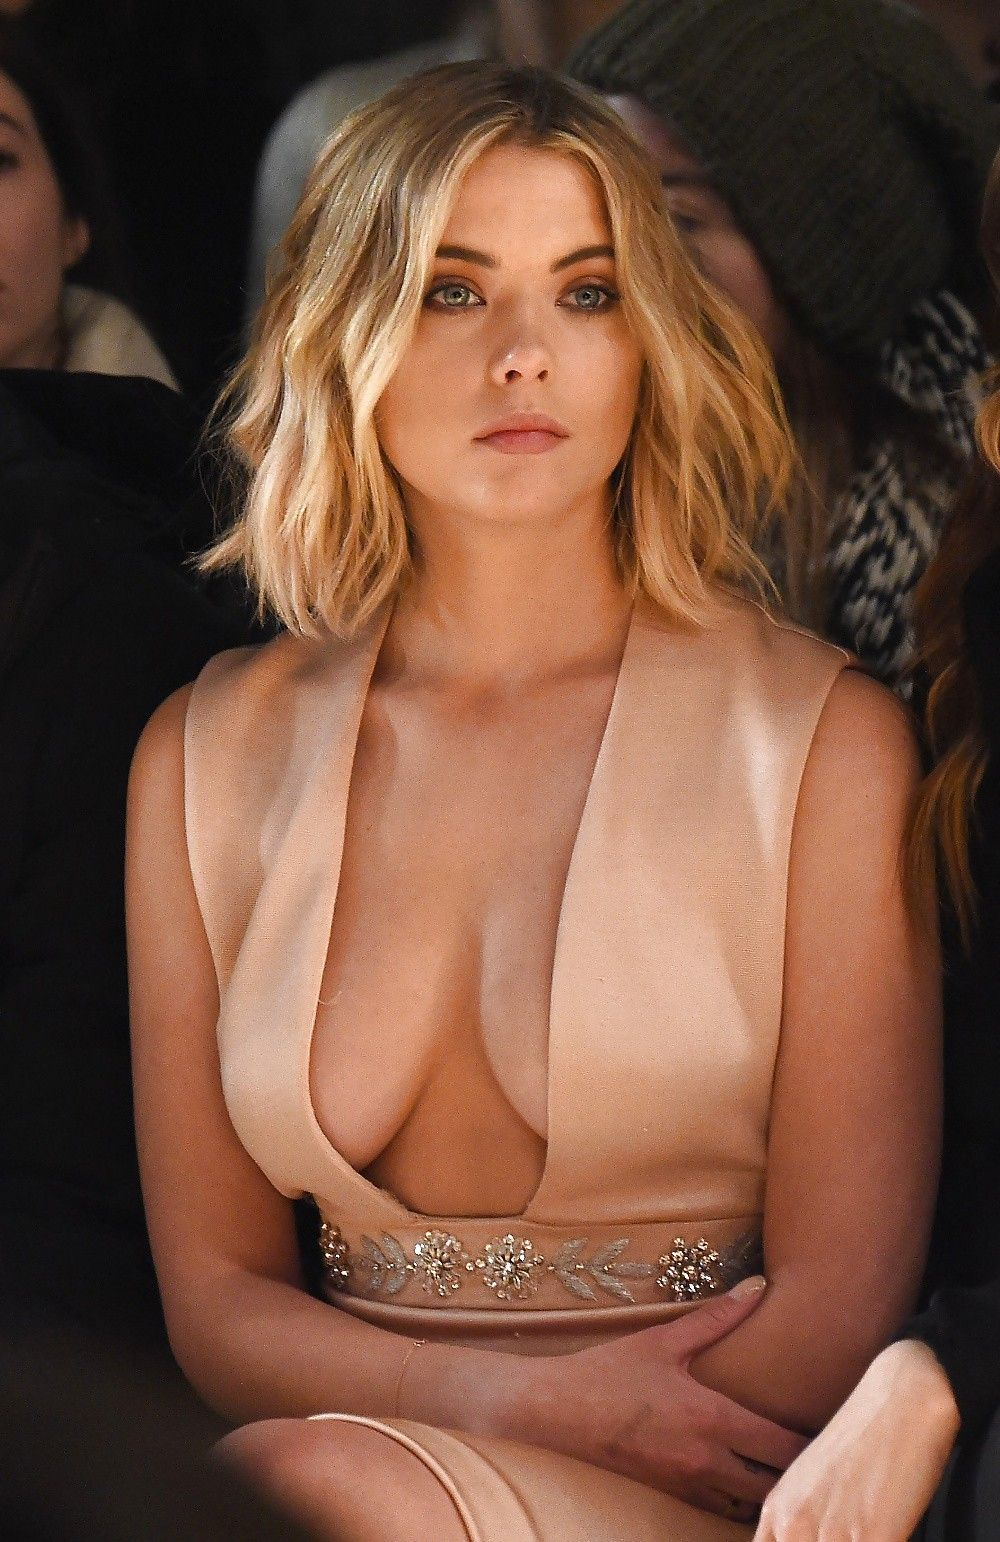 Clutch reccomend Nude pictures of ashley benson